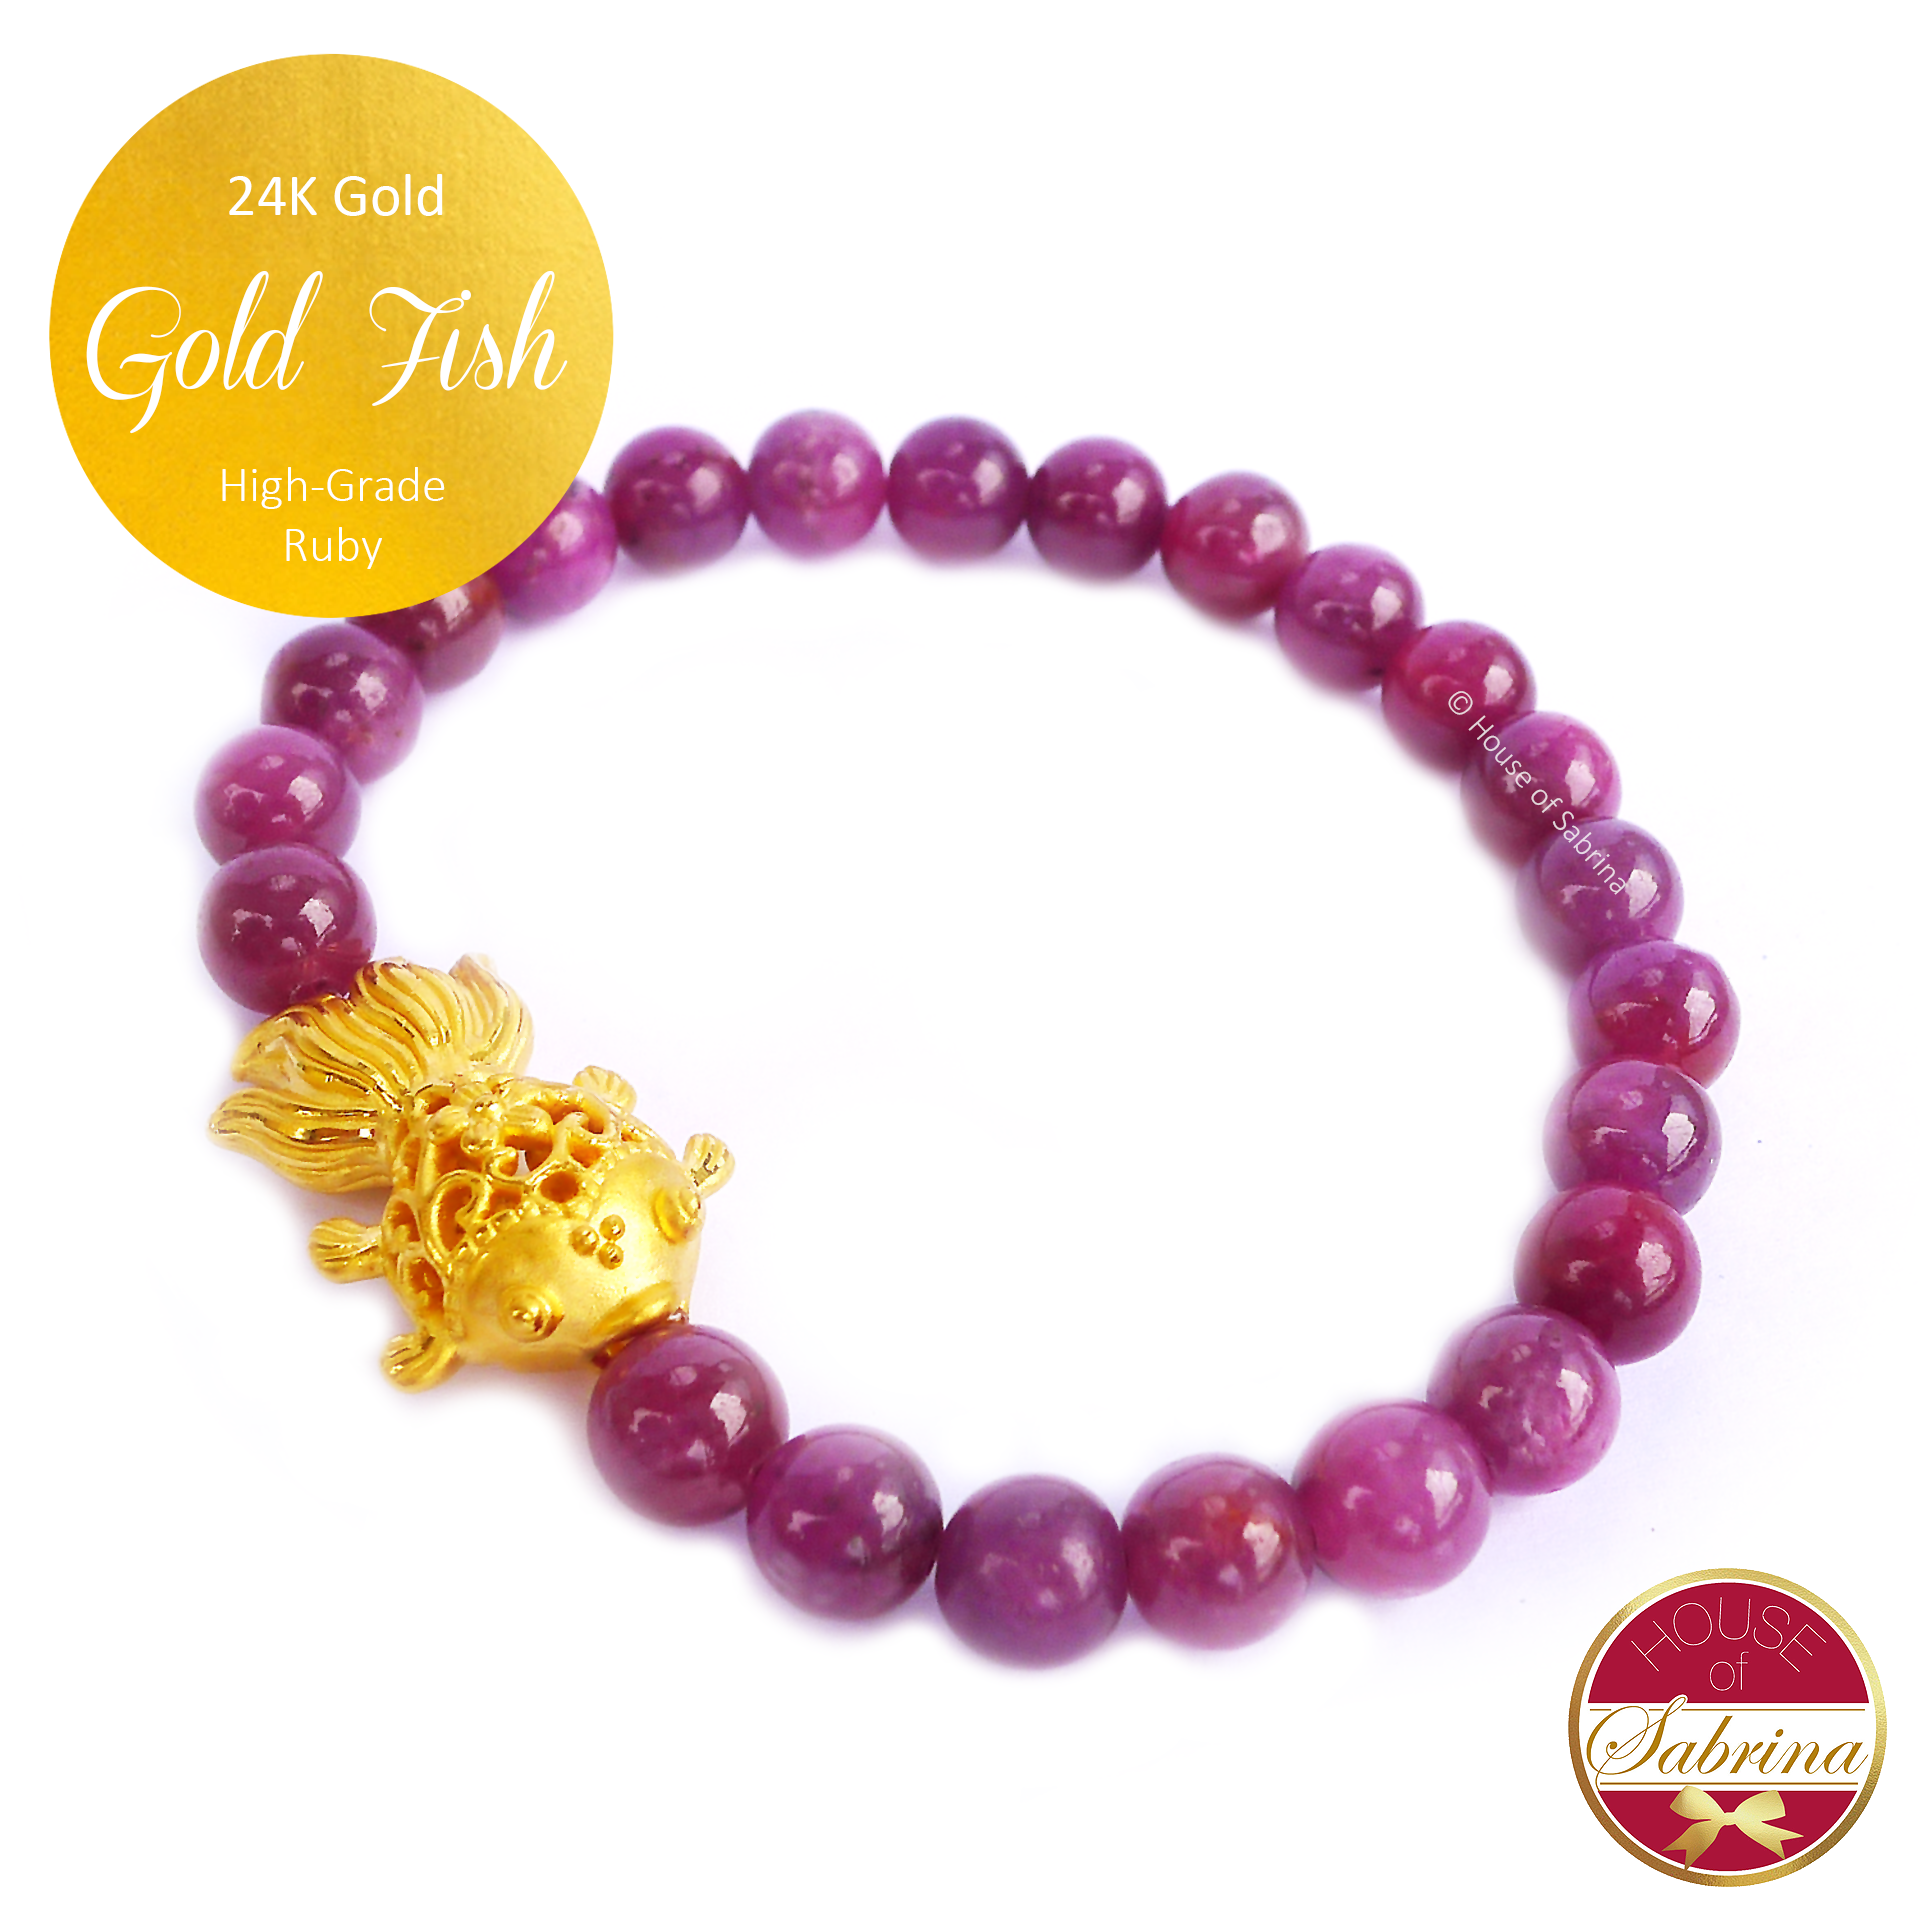 24K Gold Fish on High Grade Ruby Gemstone Bracelet